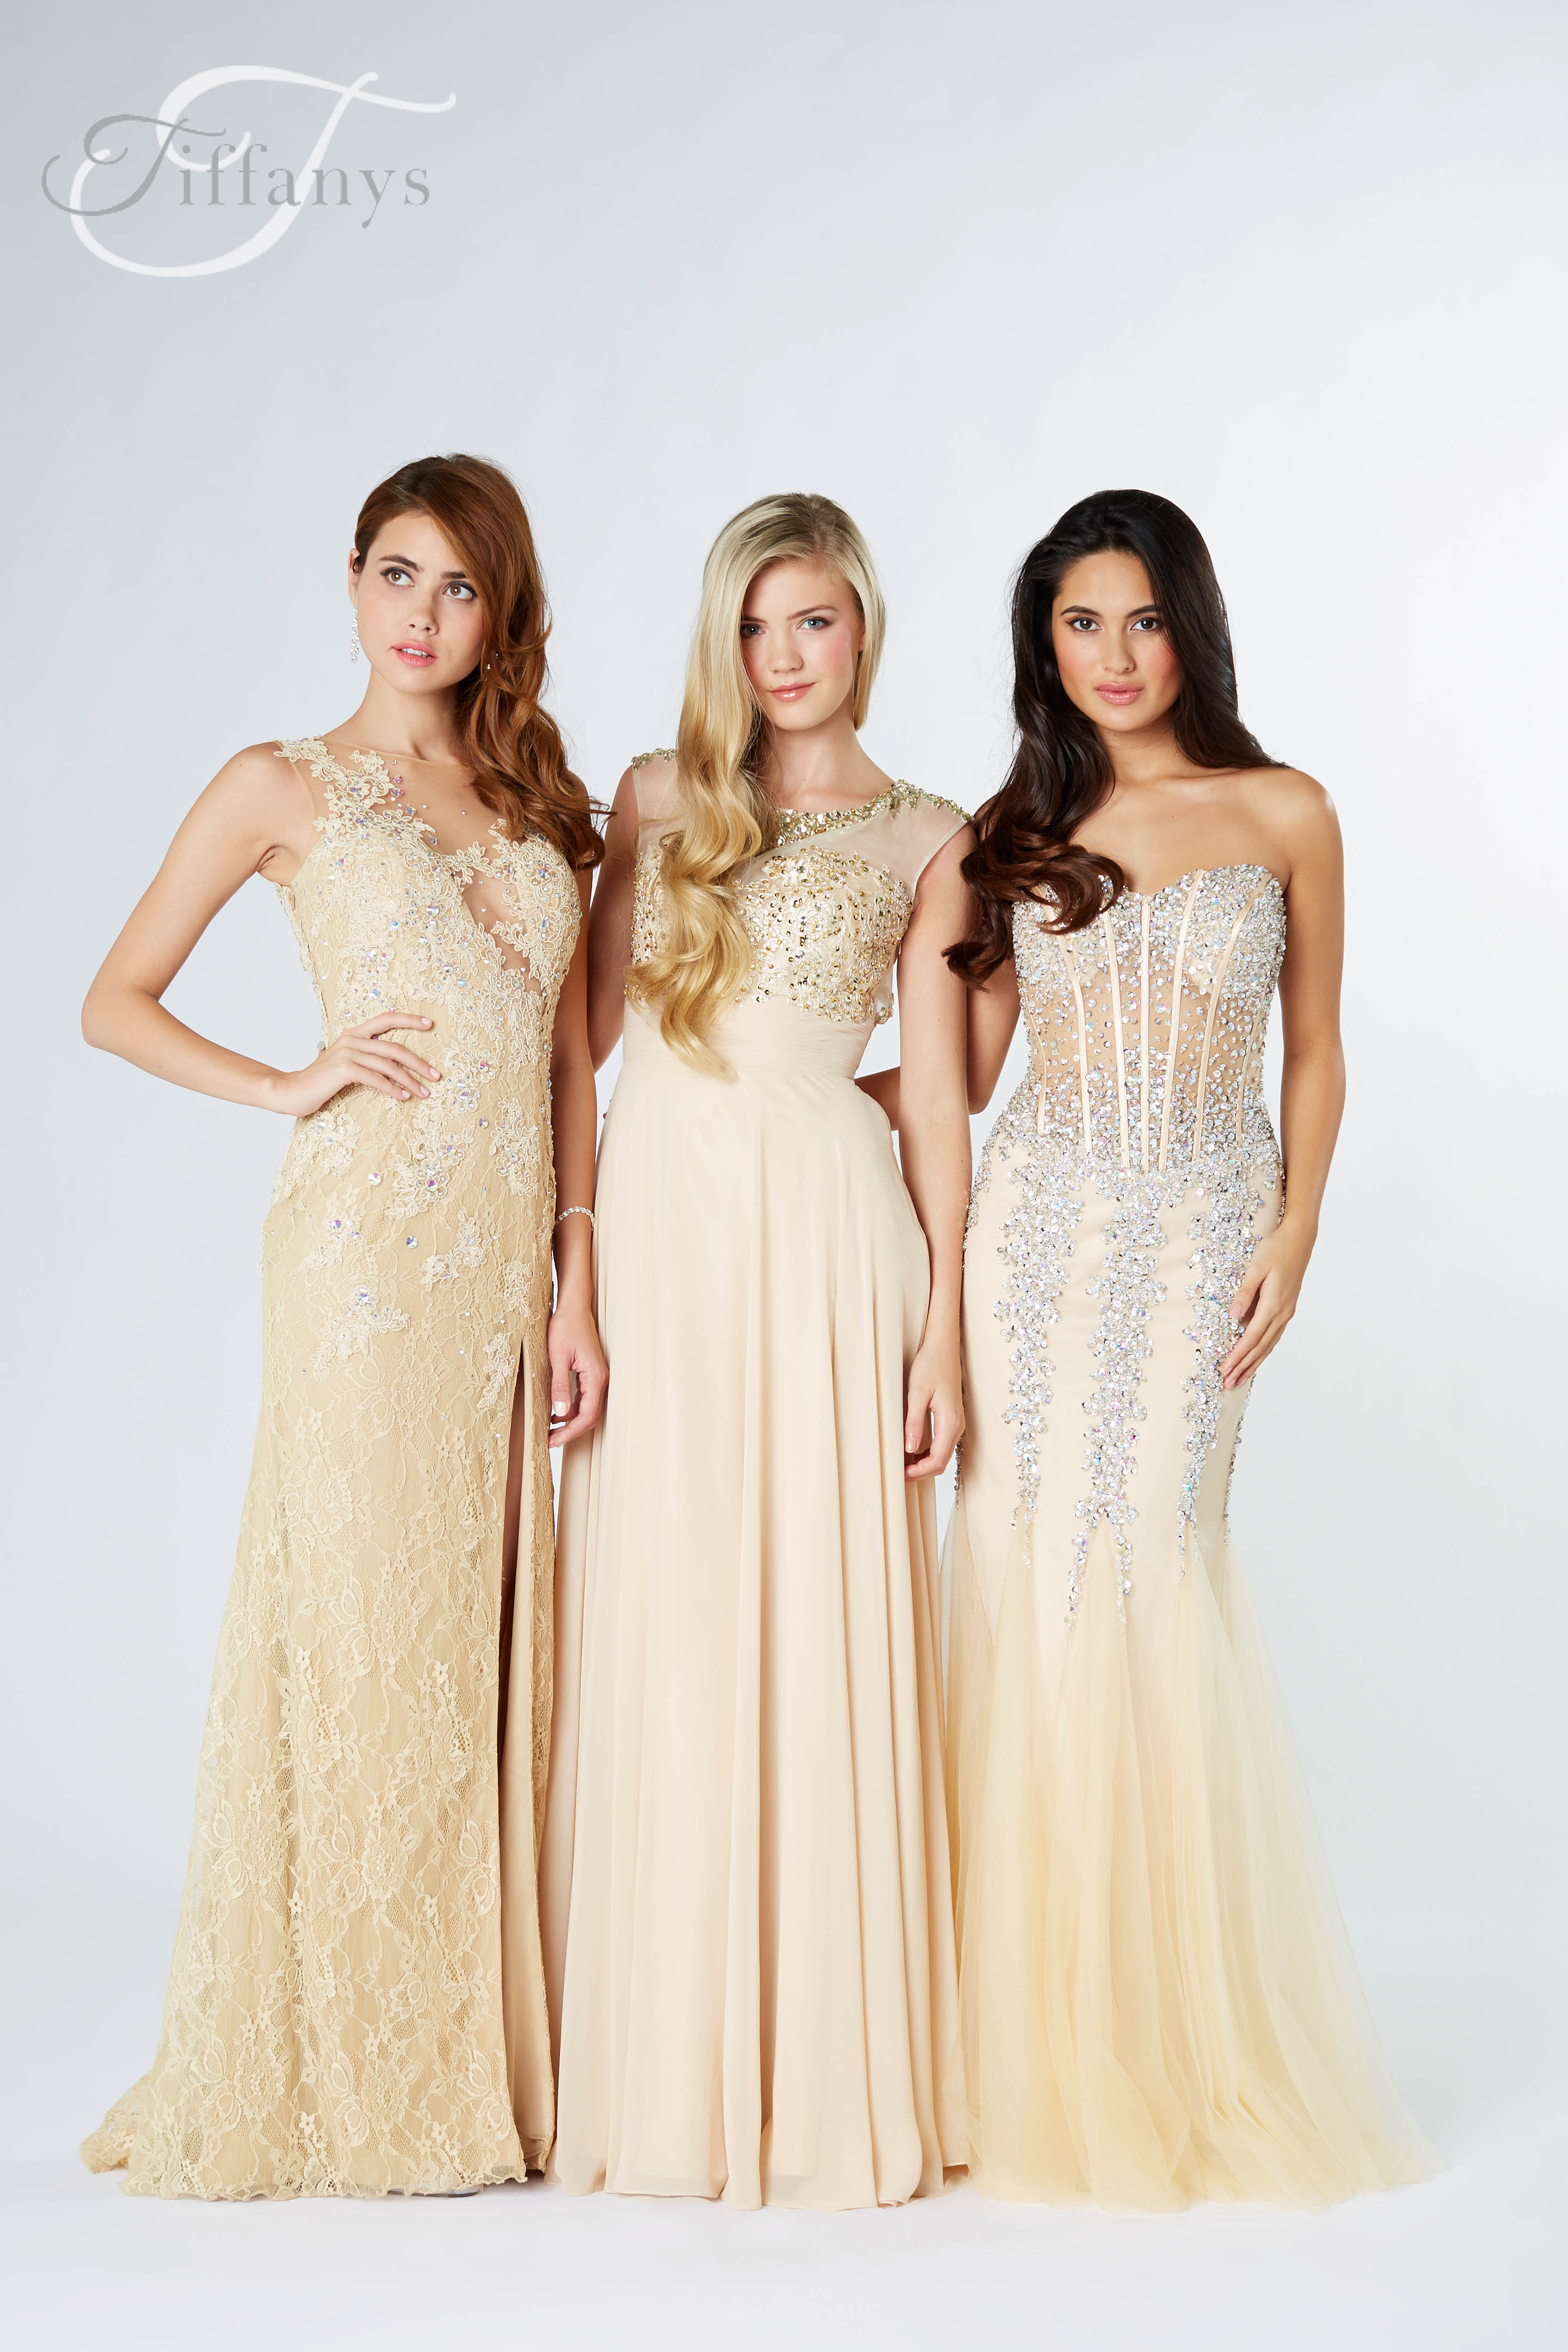 Awesome Prom Dresses In Birmingham Uk Sketch - Wedding Dress Ideas ...